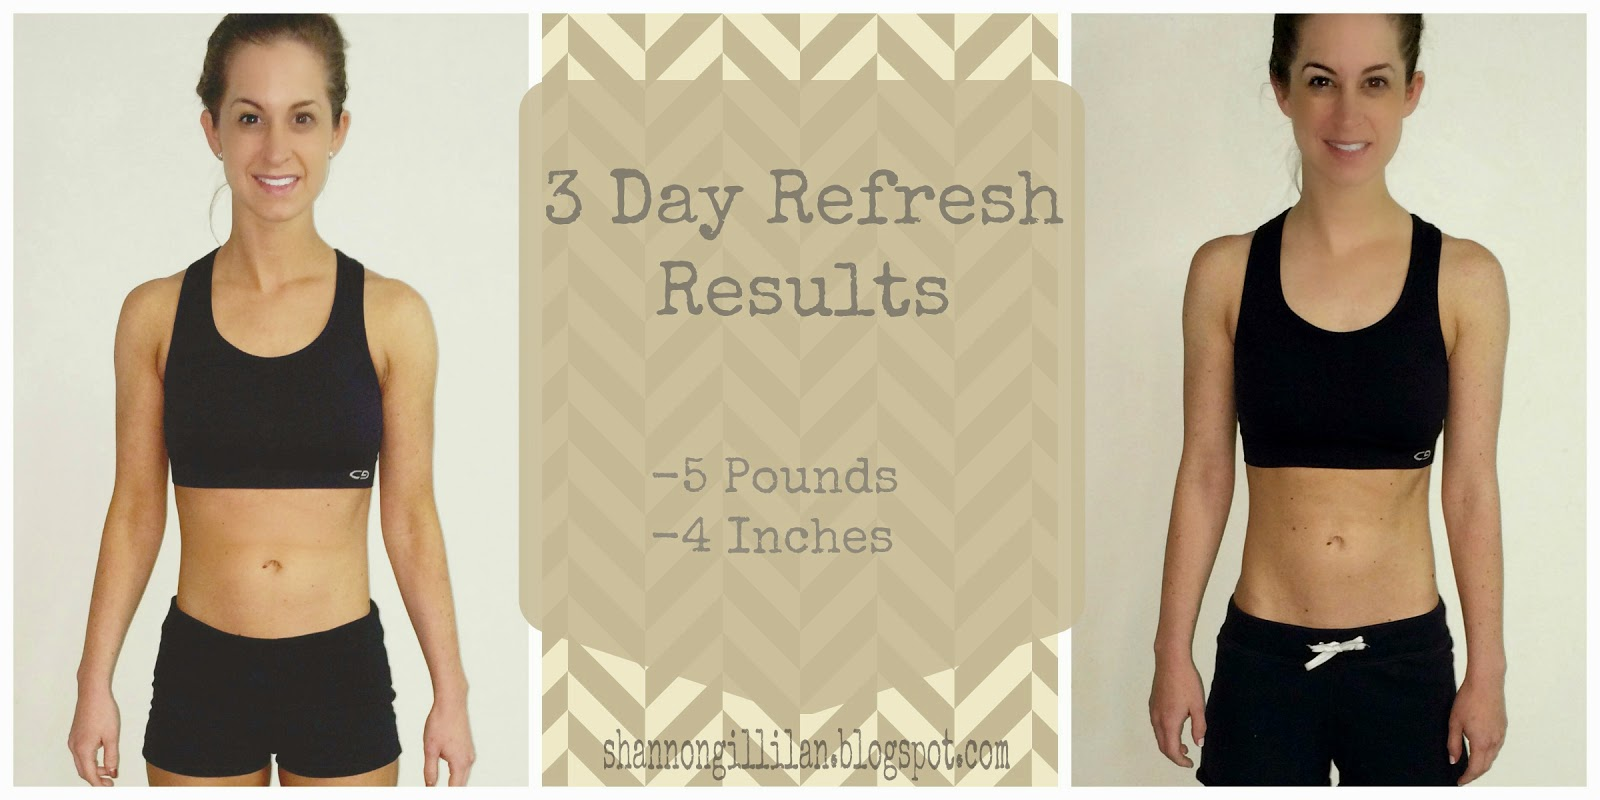 3 Day Refresh Beachbody Results Cleanse Detox www.shannongillilan.blogspot.com